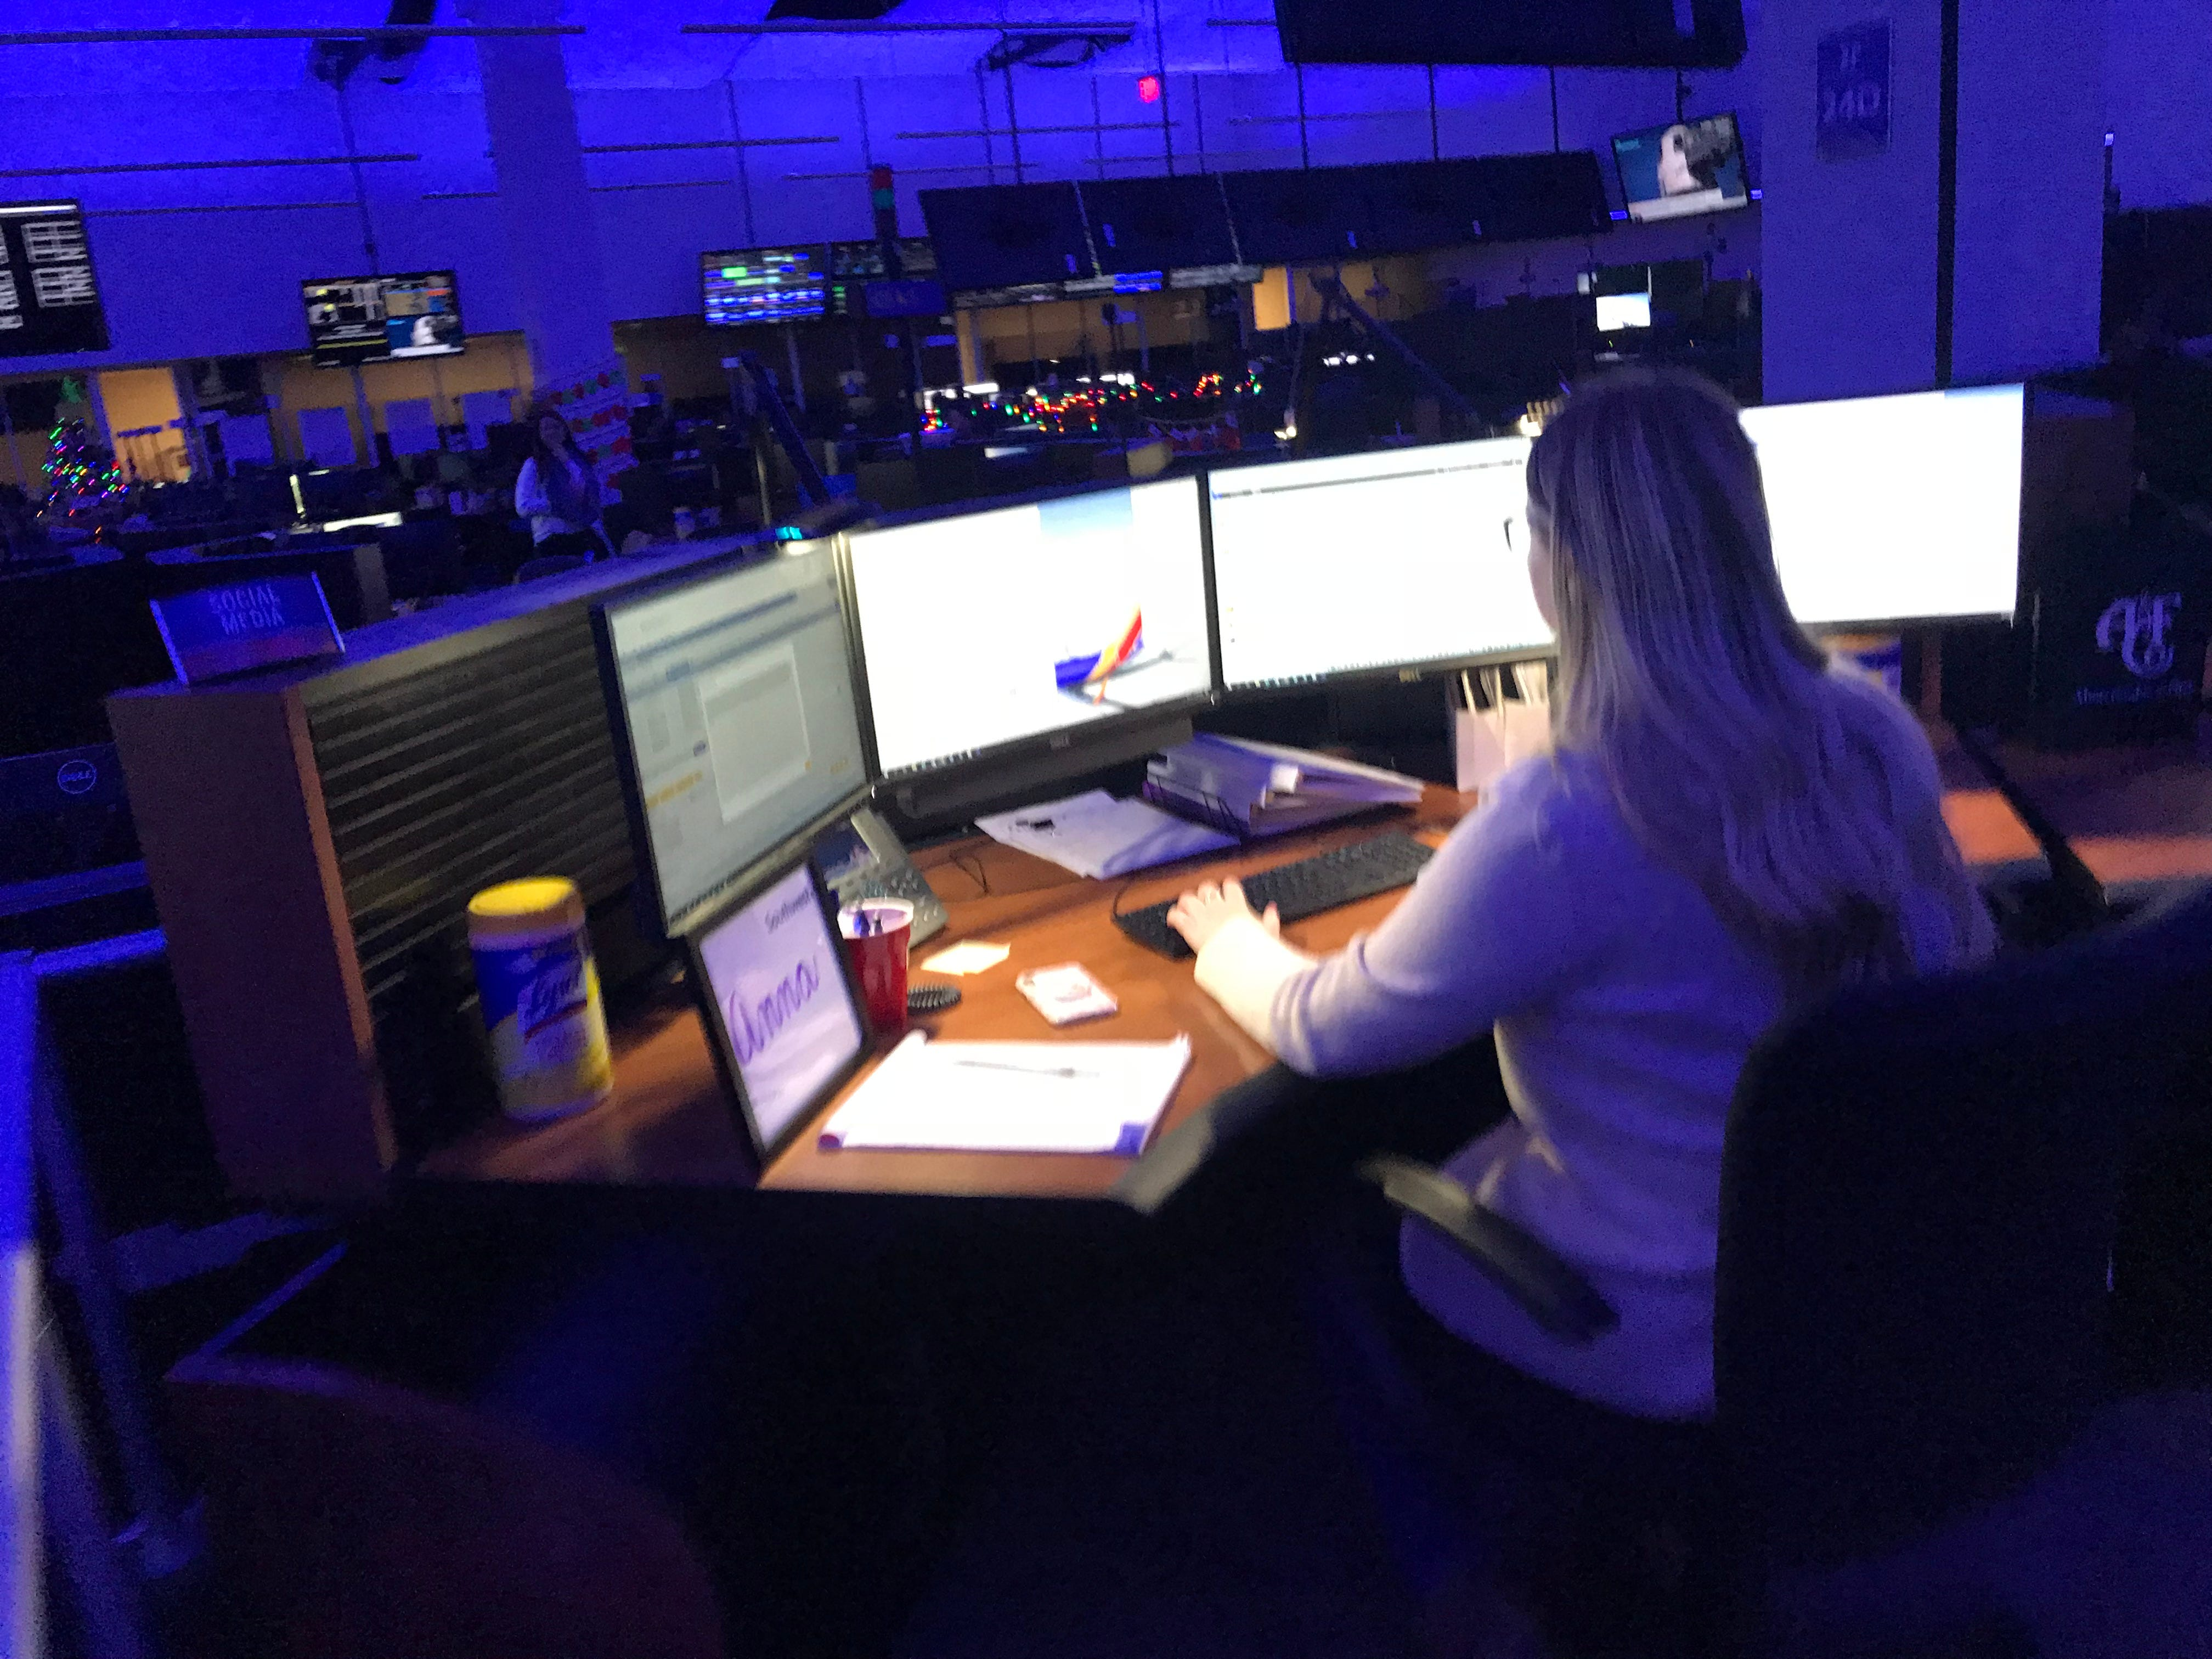 Inside American and Southwest airlines' operations centers: Keeping flights running smoothly